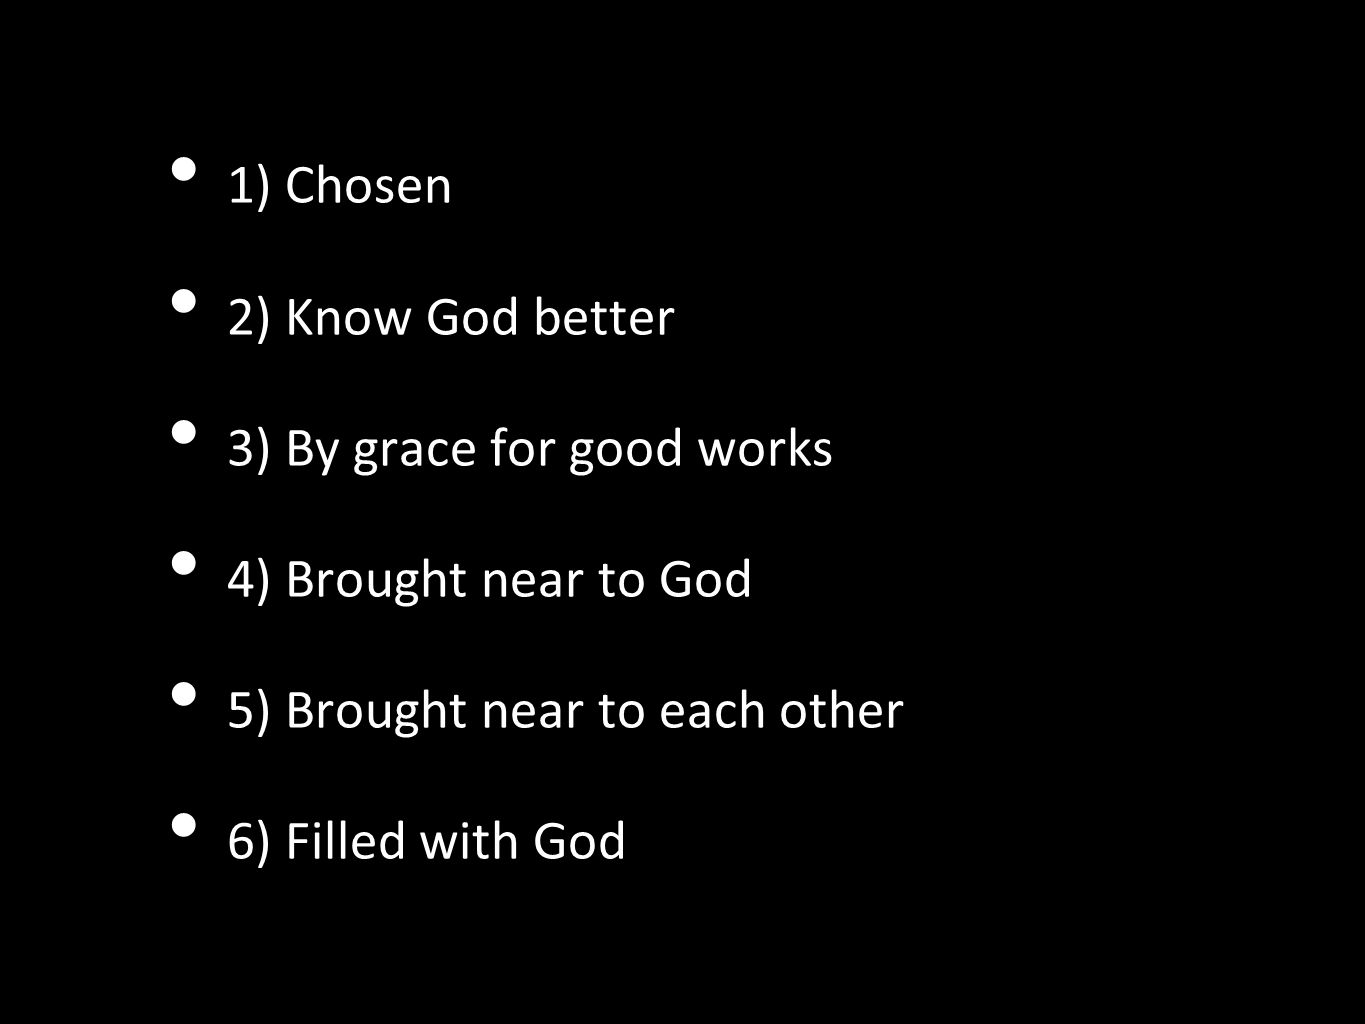 1) Chosen 2) Know God better. 3) By grace for good works. 4) Brought near to God. 5) Brought near to each other.